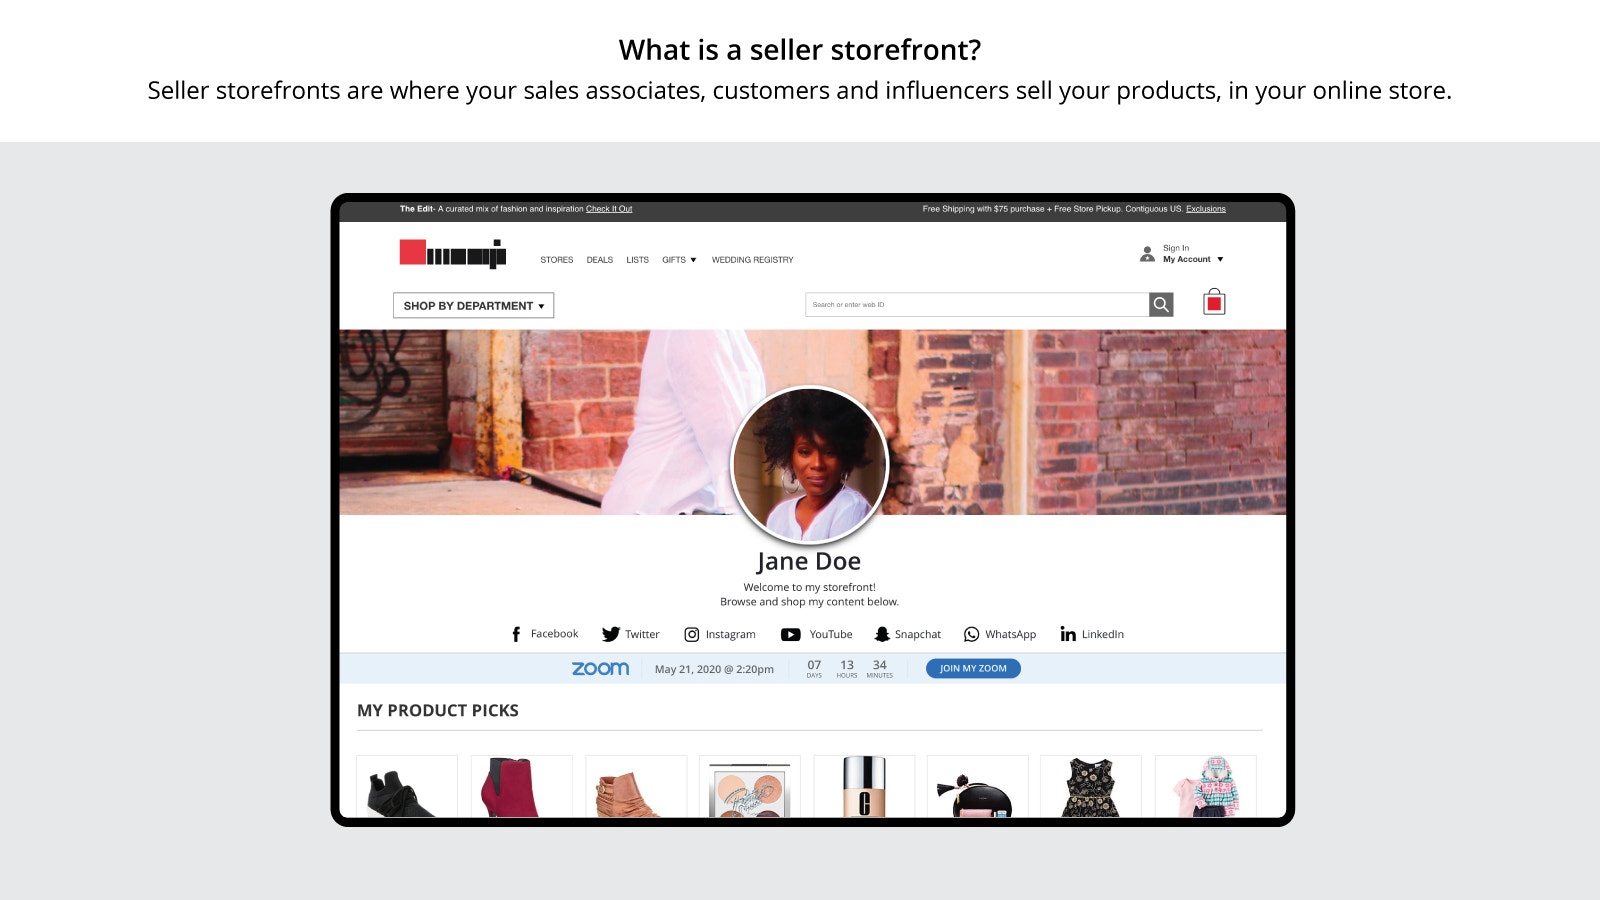 What is an influencer storefront?